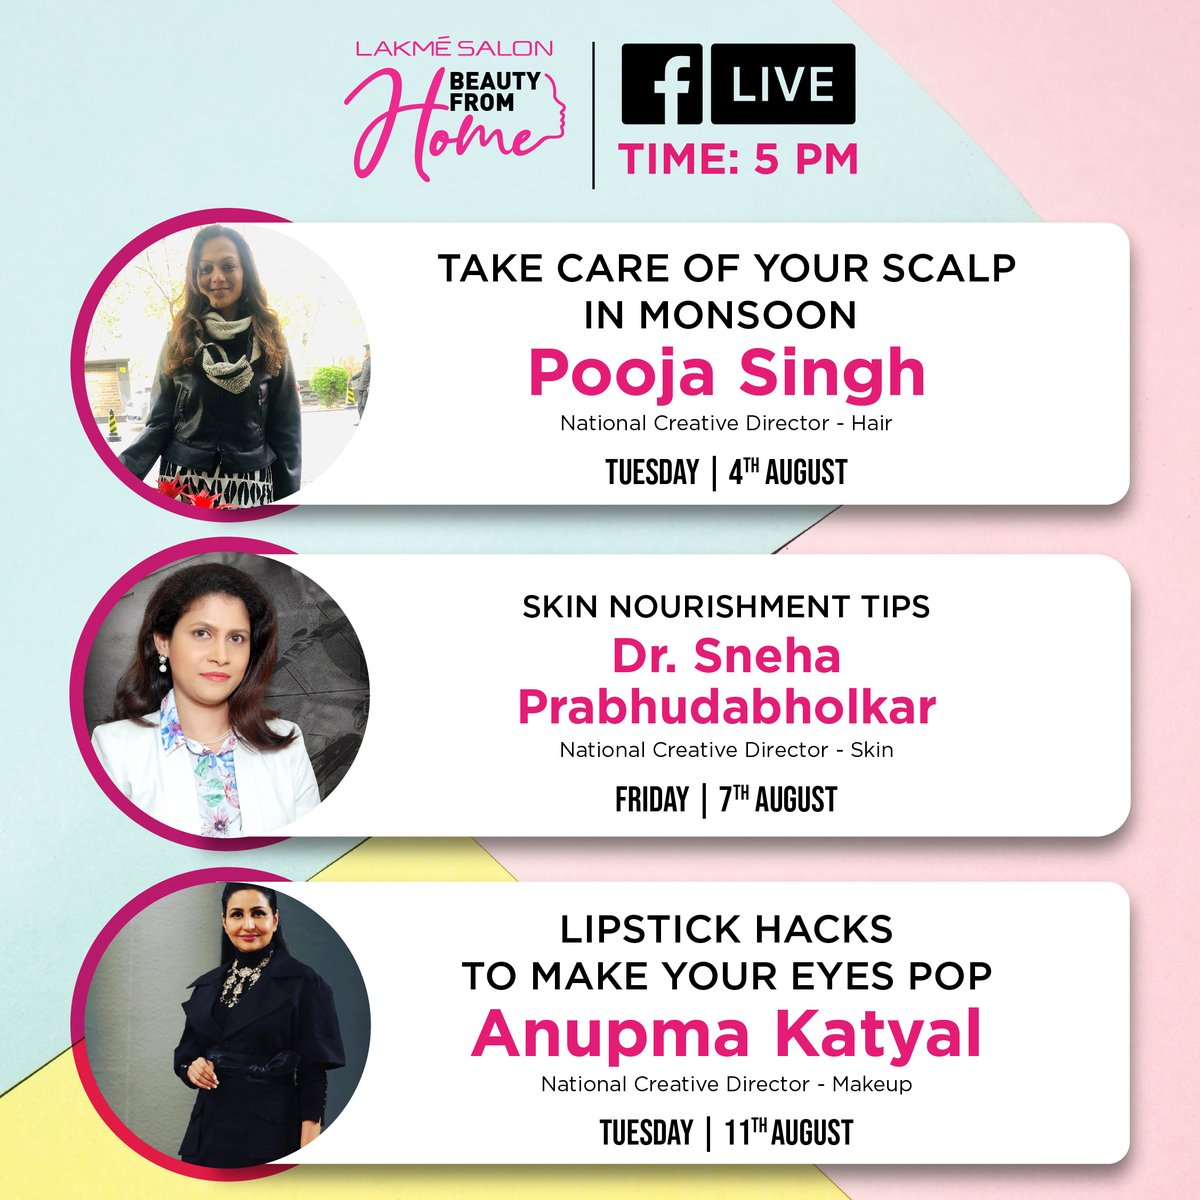 Here's an exciting line up for the upcoming days, loaded with tips and hacks for your makeup, skin and hair 💕  Gear up to learn something new every Tuesday and Friday and tune in to our #BeautyFromHome sessions happening LIVE at 5 PM on FB.  Follow us on Facebook at @lakmesalon https://t.co/oKIWpKugpU